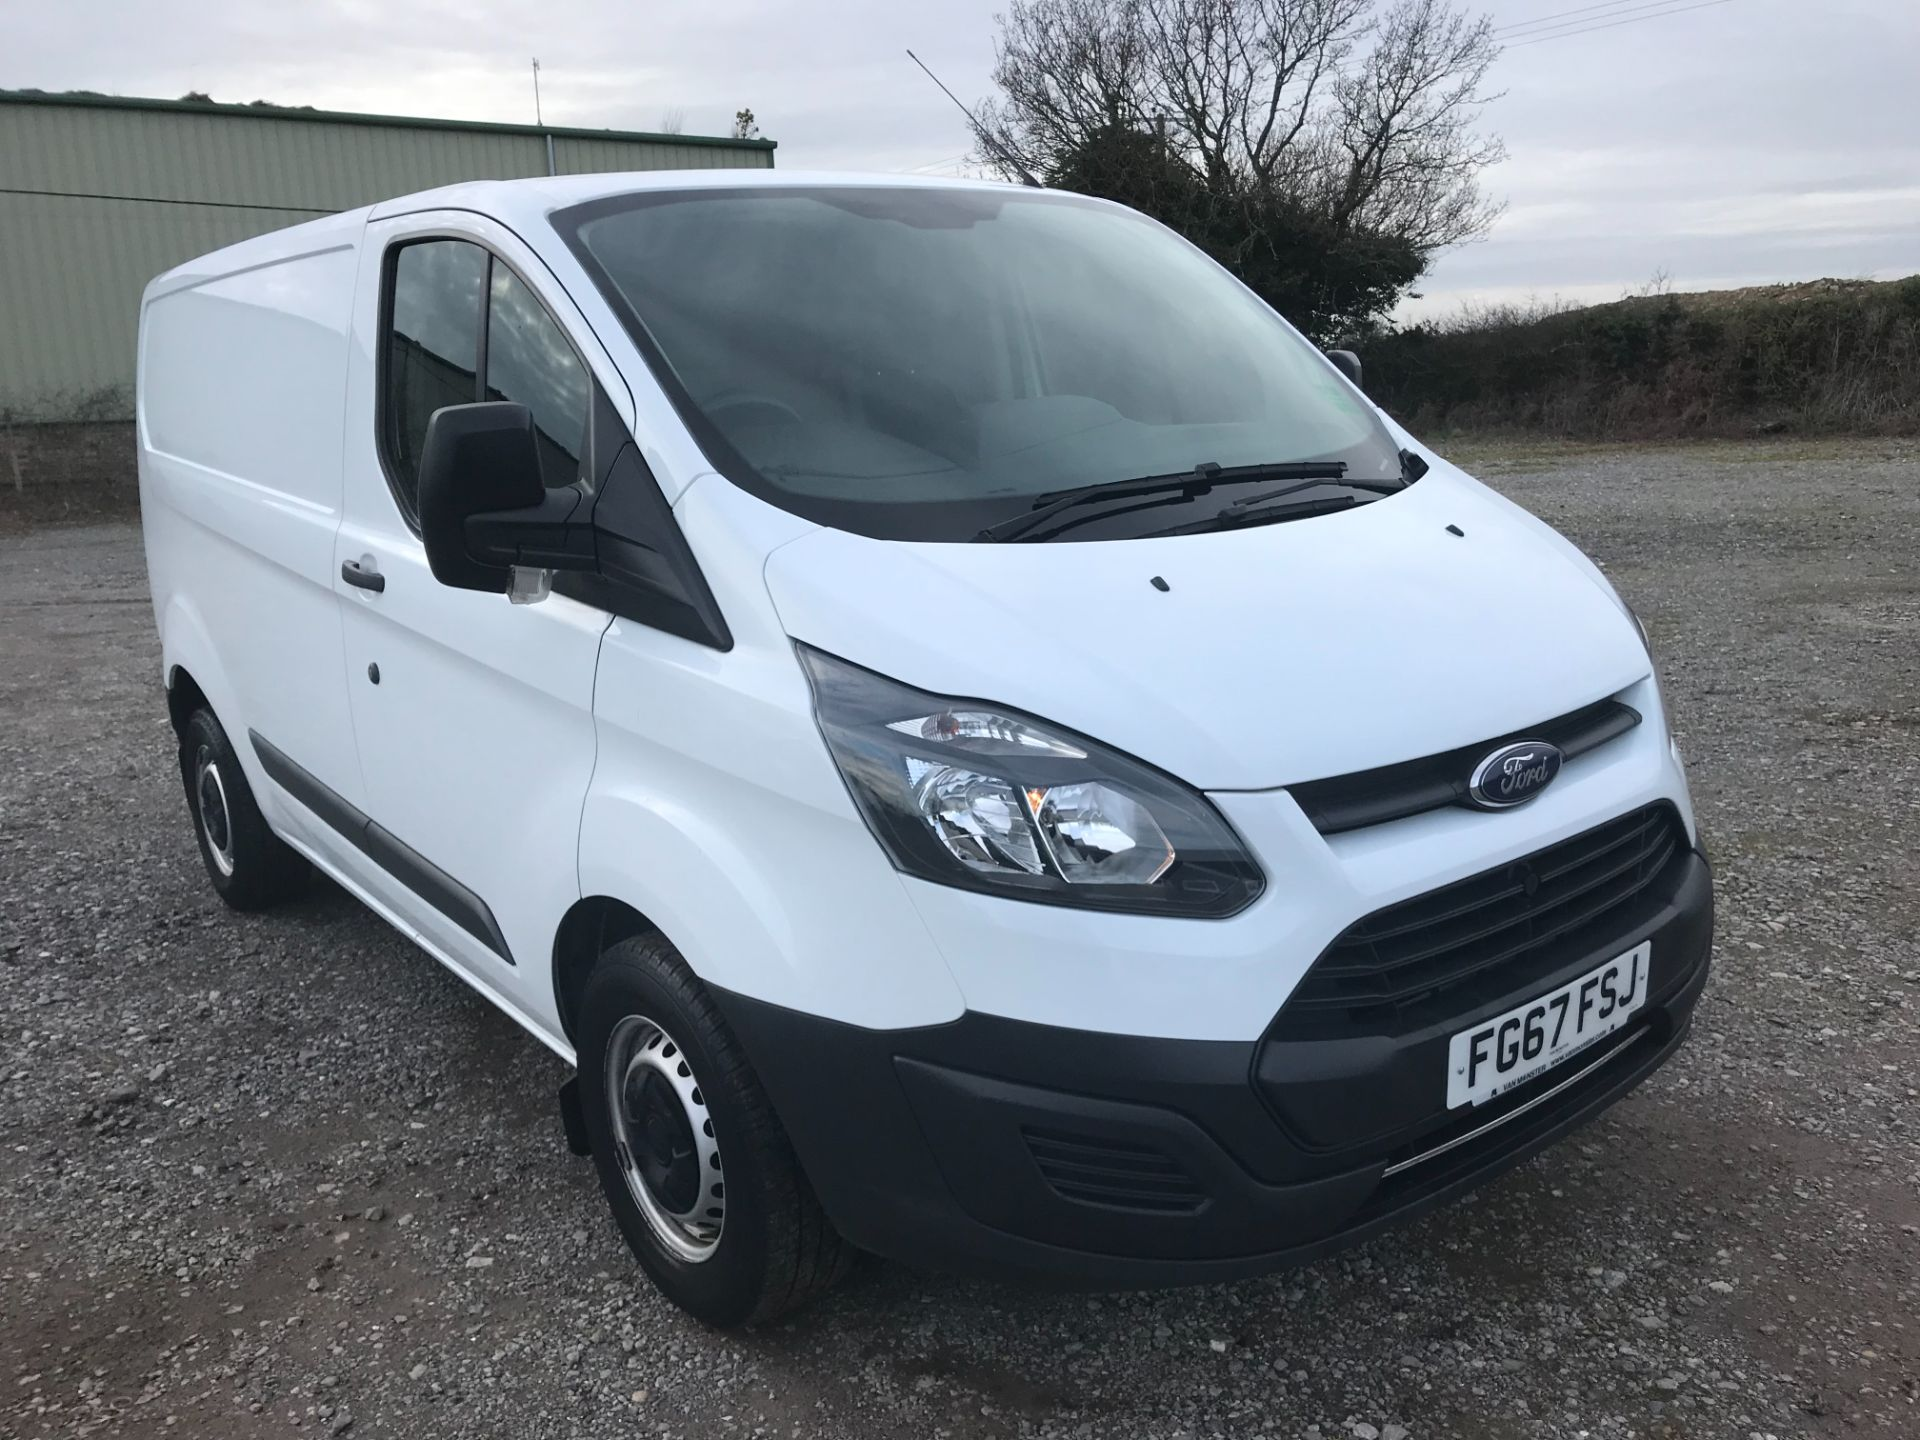 2017 Ford Transit Custom  290 L1 DIESEL FWD 2.0 TDCI 105PS LOW ROOF VAN EURO 6 (FG67FSJ)